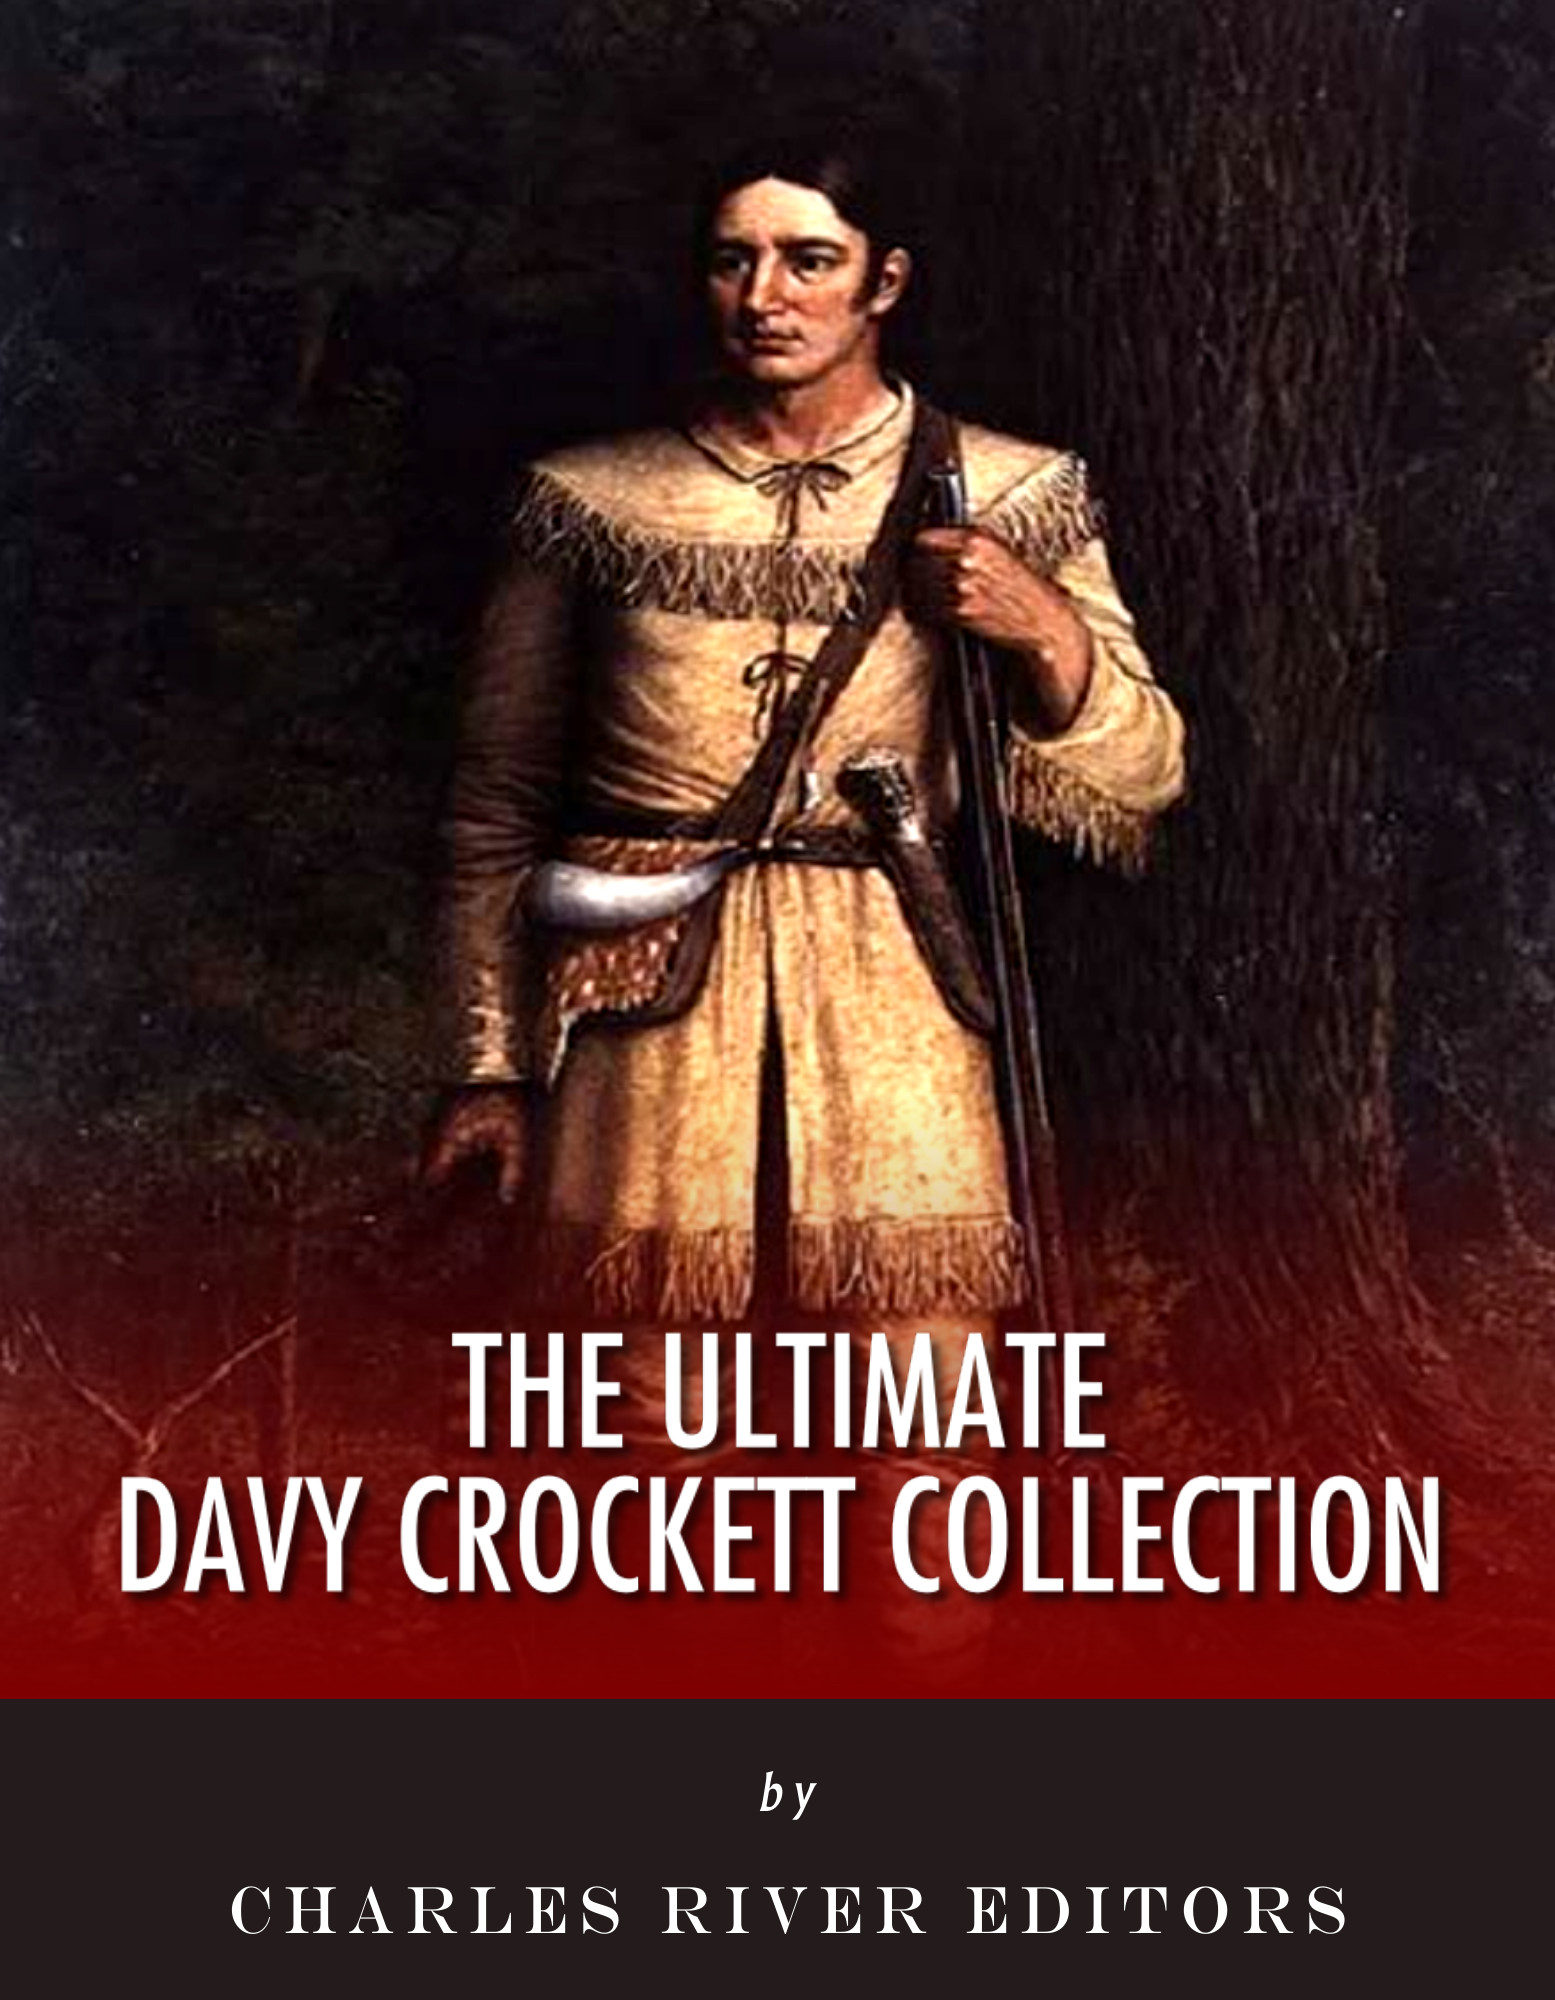 The Ultimate Davy Crockett Collection